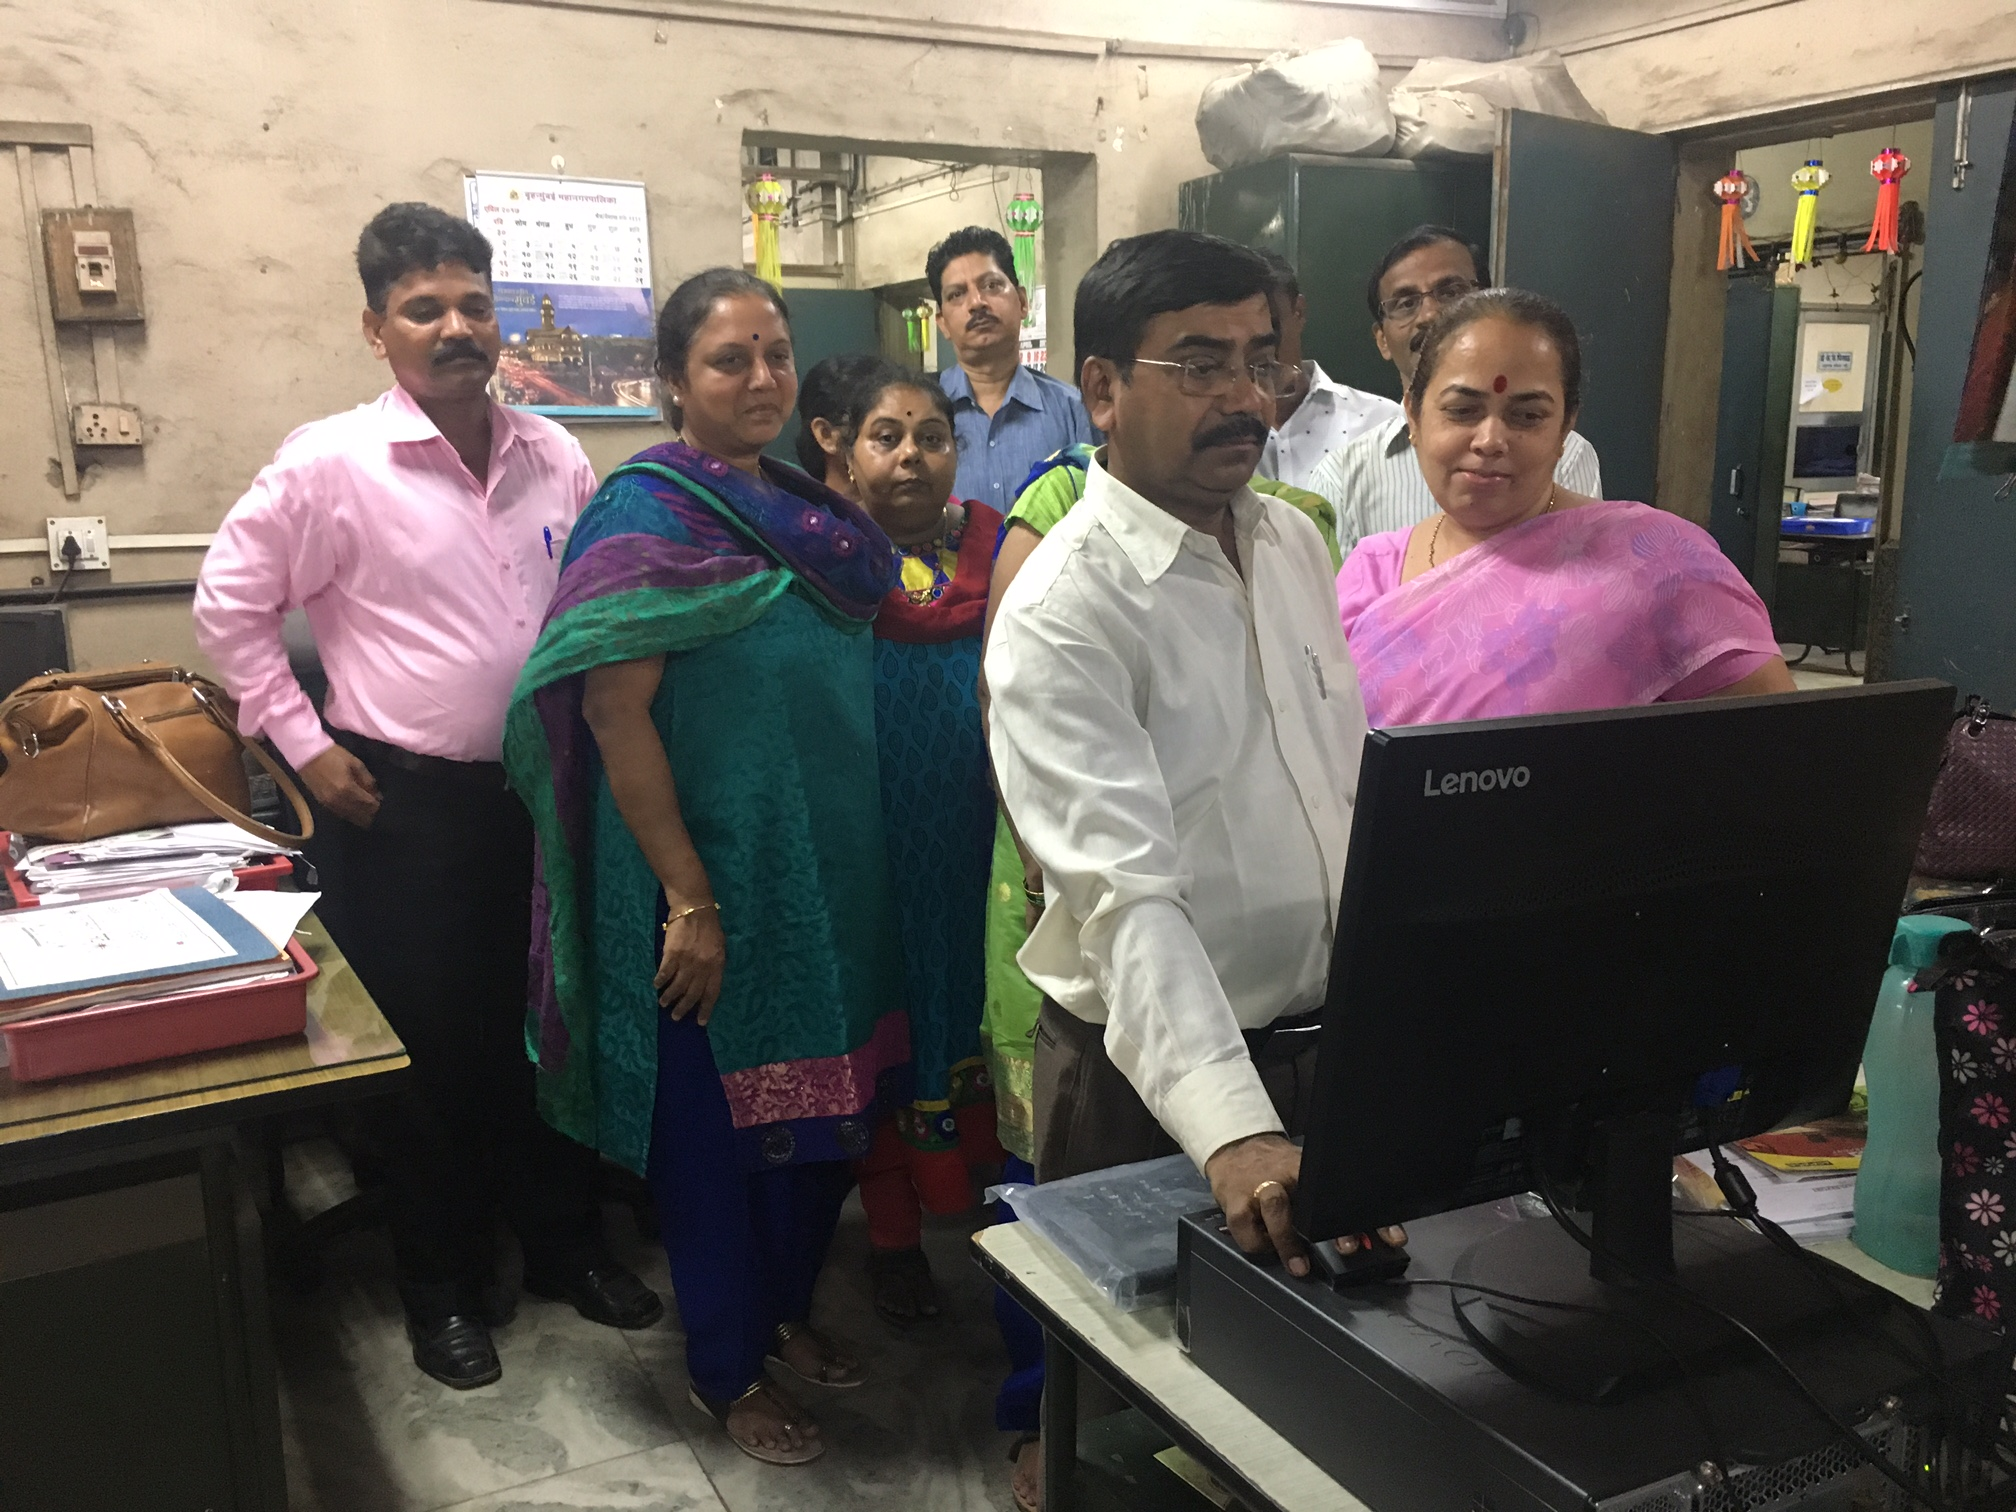 Employees of the R-North ward office line up at the Aadhaar-enabled biometric attendance system. (Credit: Priyanka Vora)